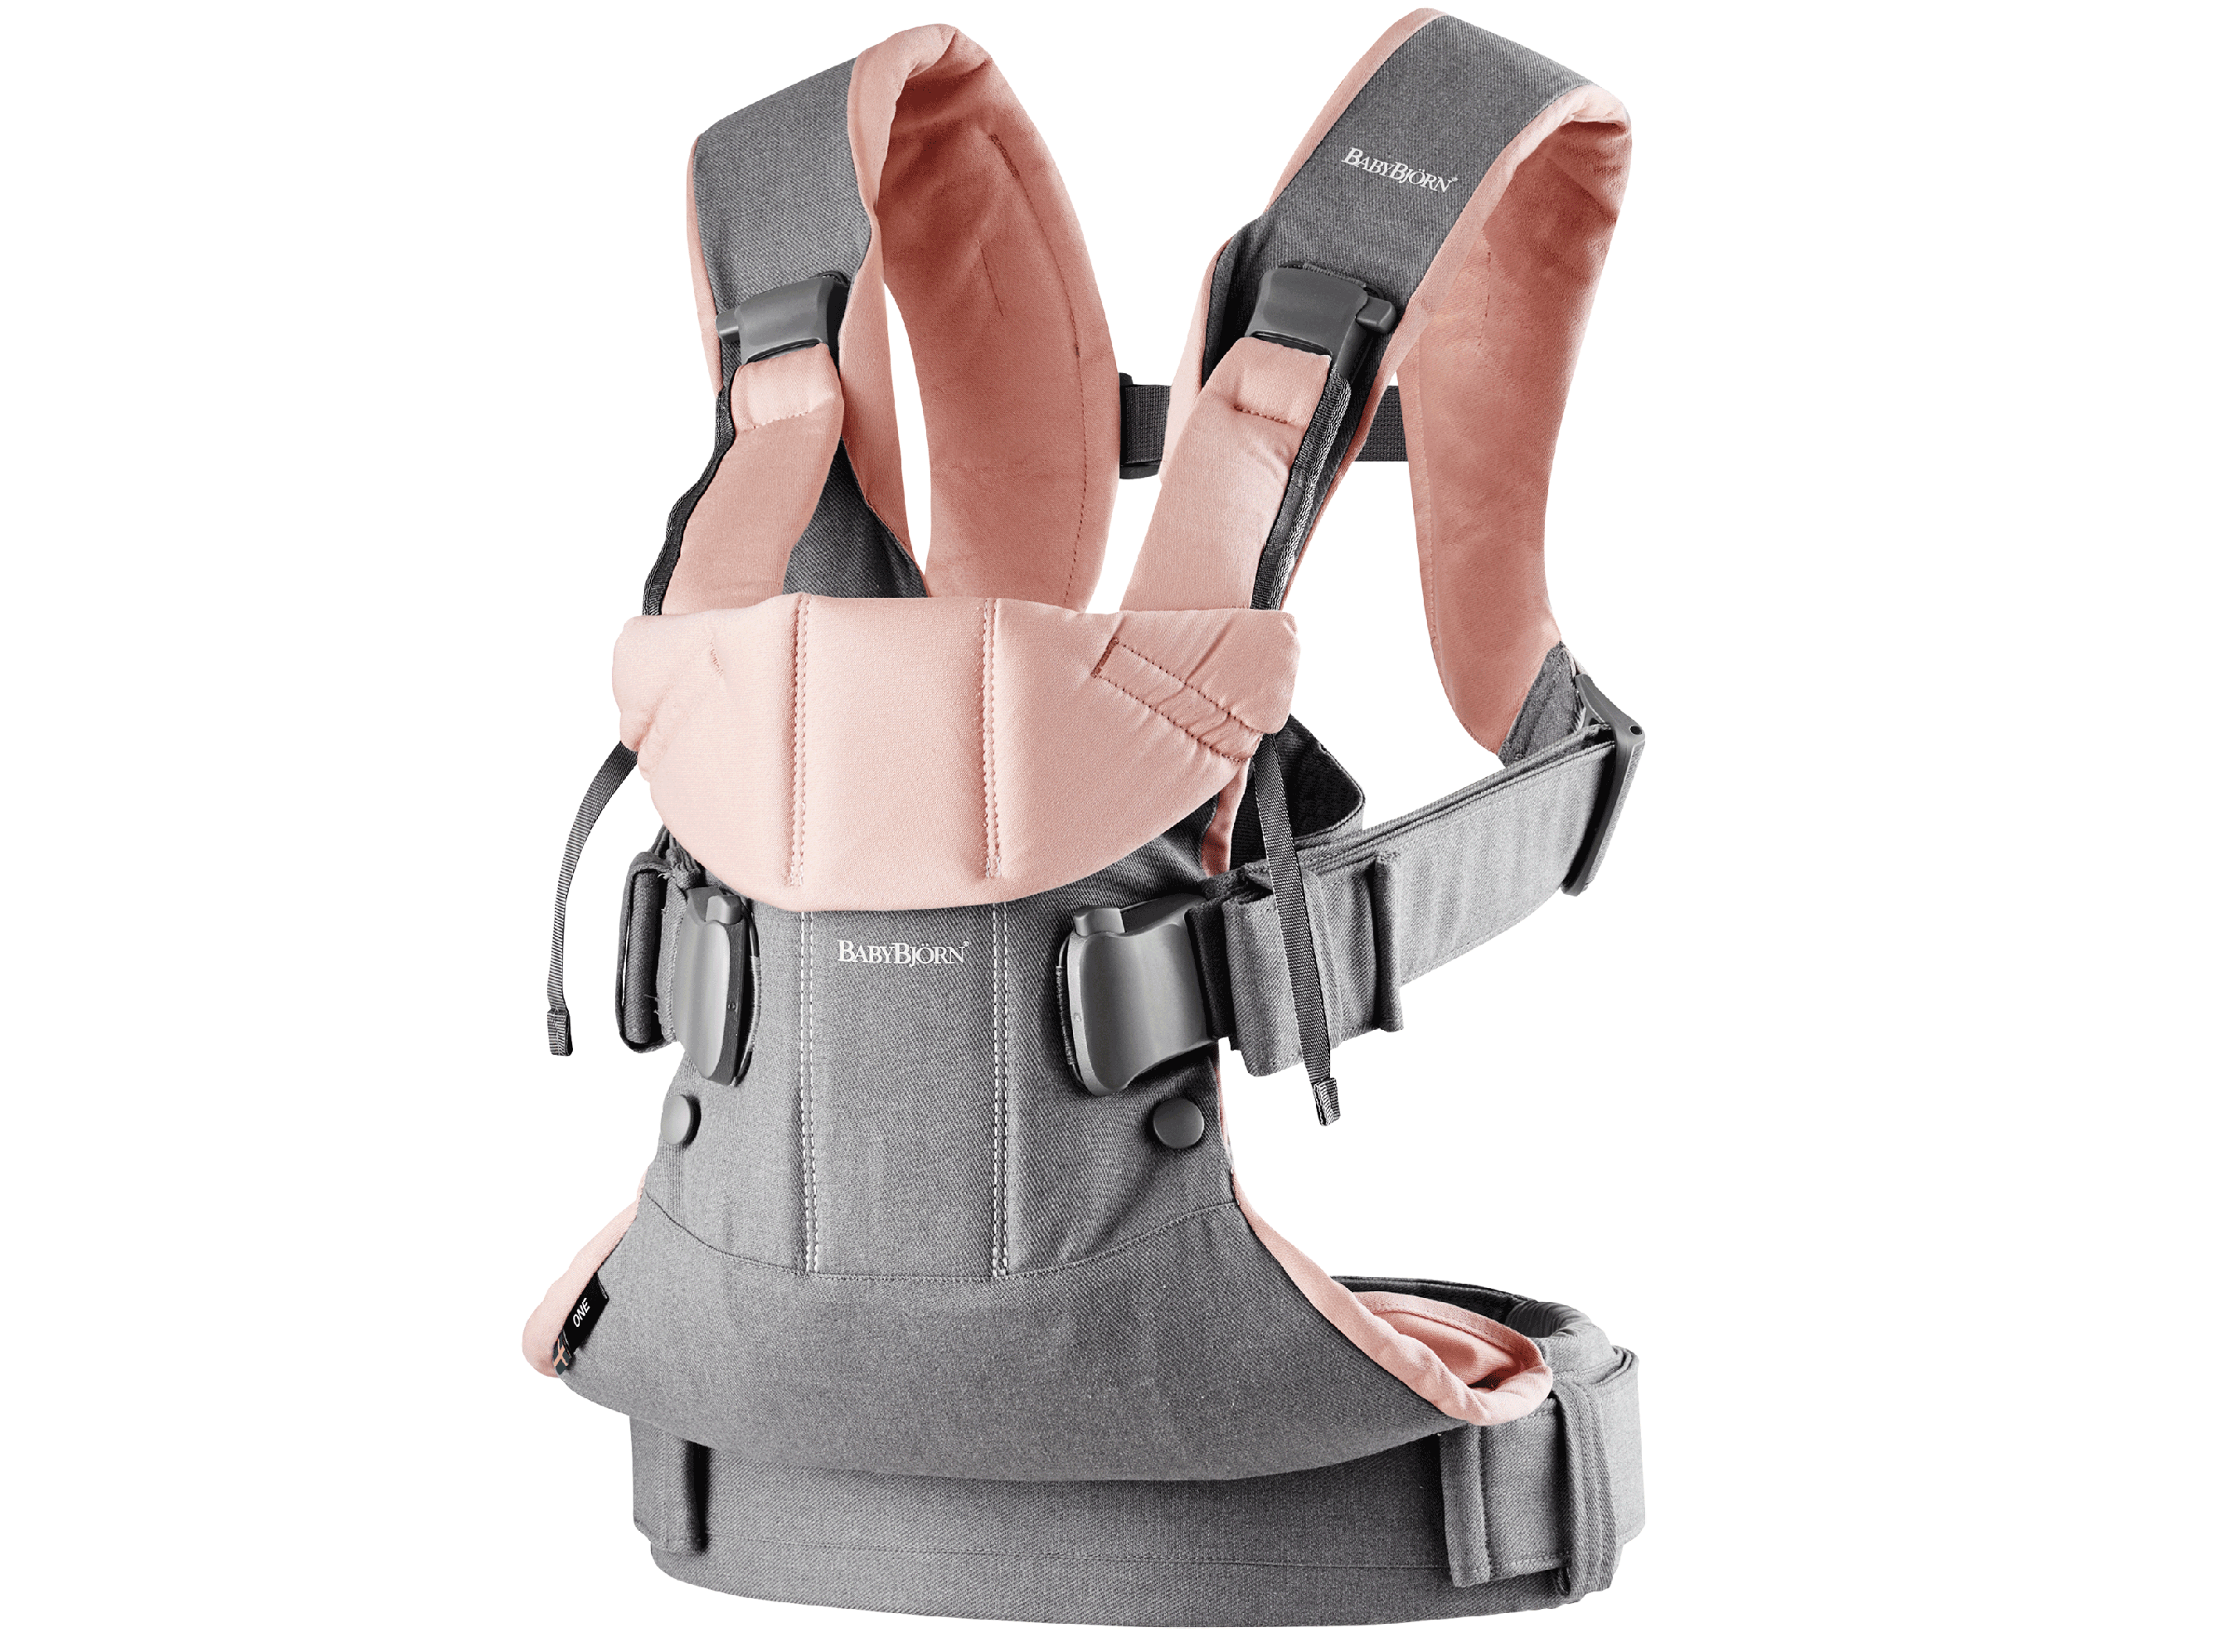 Baby Carrier One in gray and powder pink cotton mix, an ergonomic, soft and flexible baby carrier that can be used from new born to 3 years old, including front facing and back carrying.